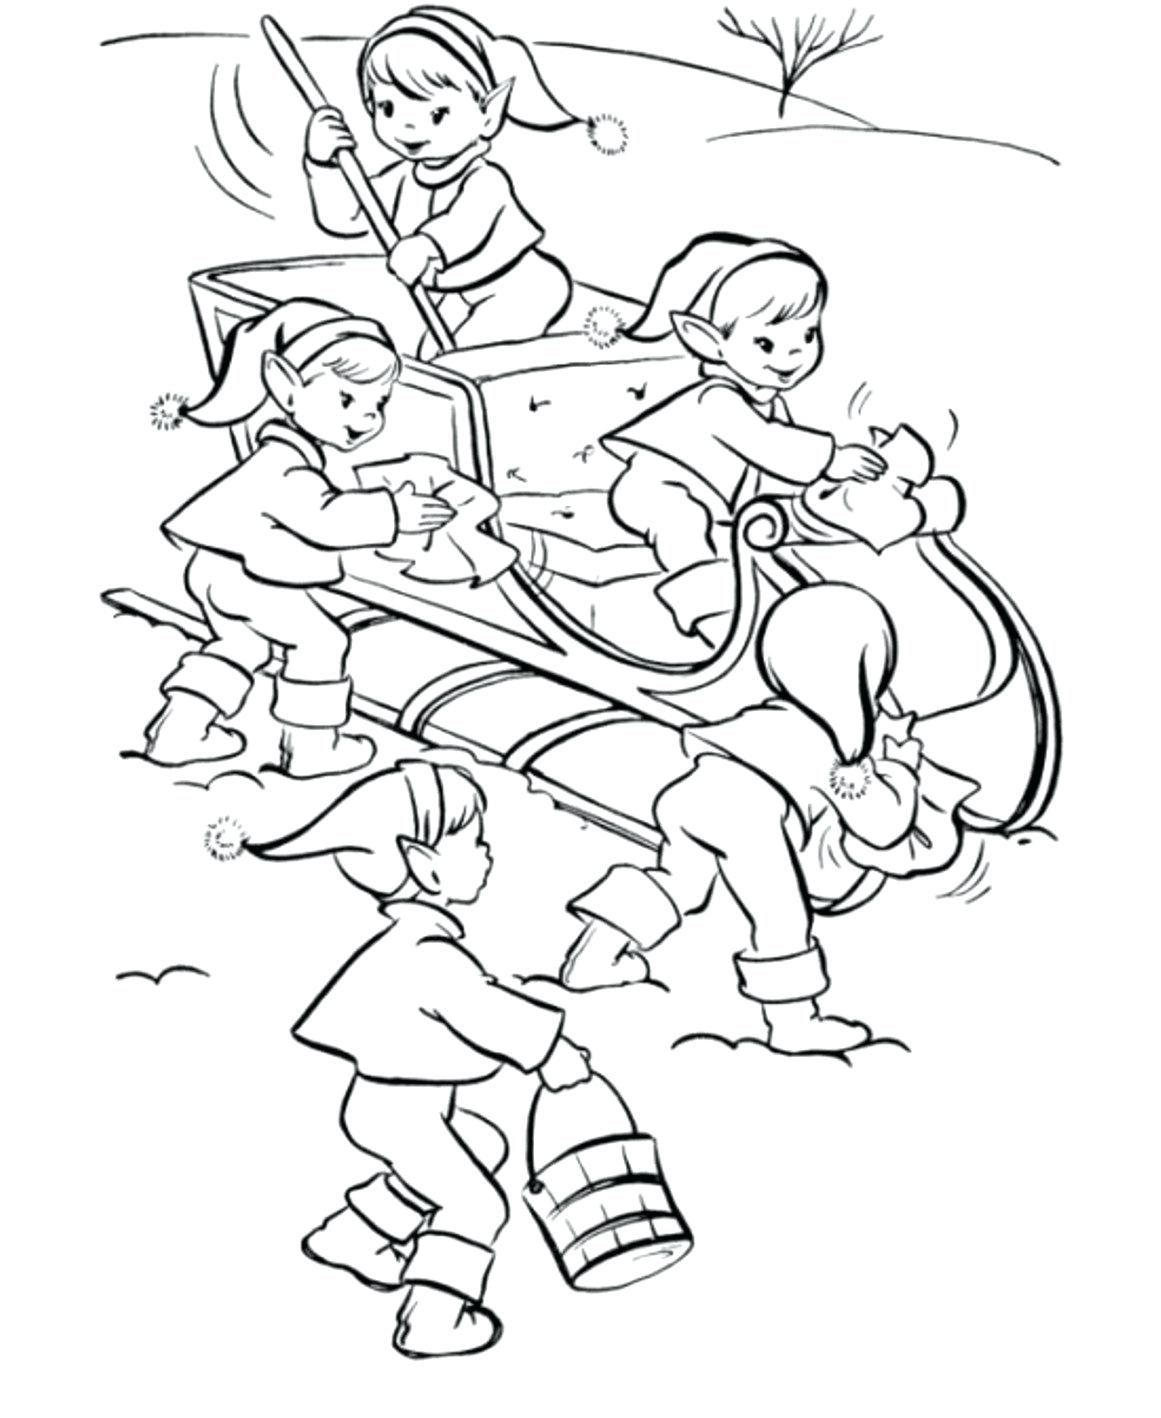 Christmas Colouring Pages Cute With Elf Coloring Elves